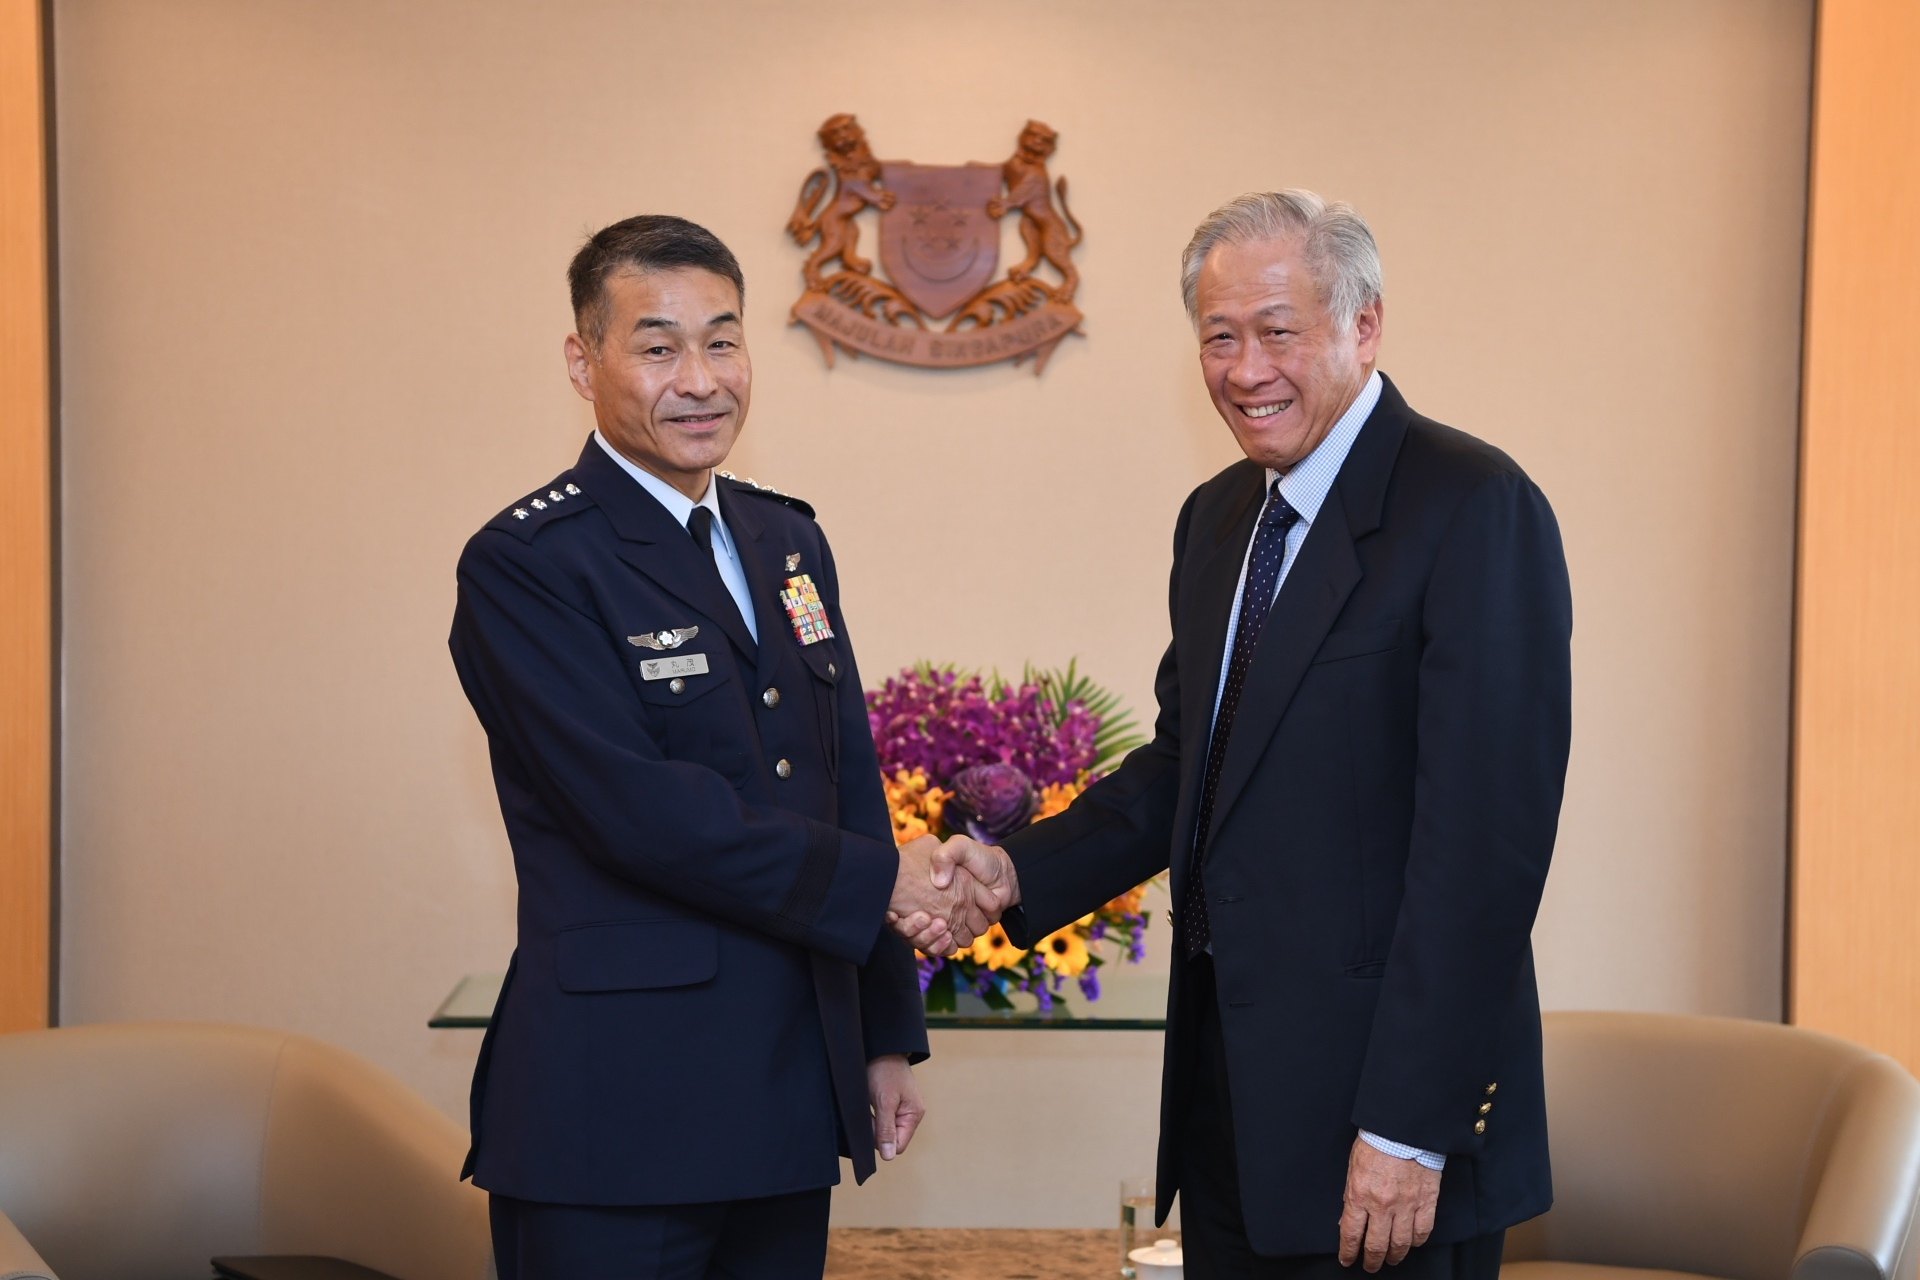 Japan_Air_Chief_Makes_Introductory_Visit_to_Singapore